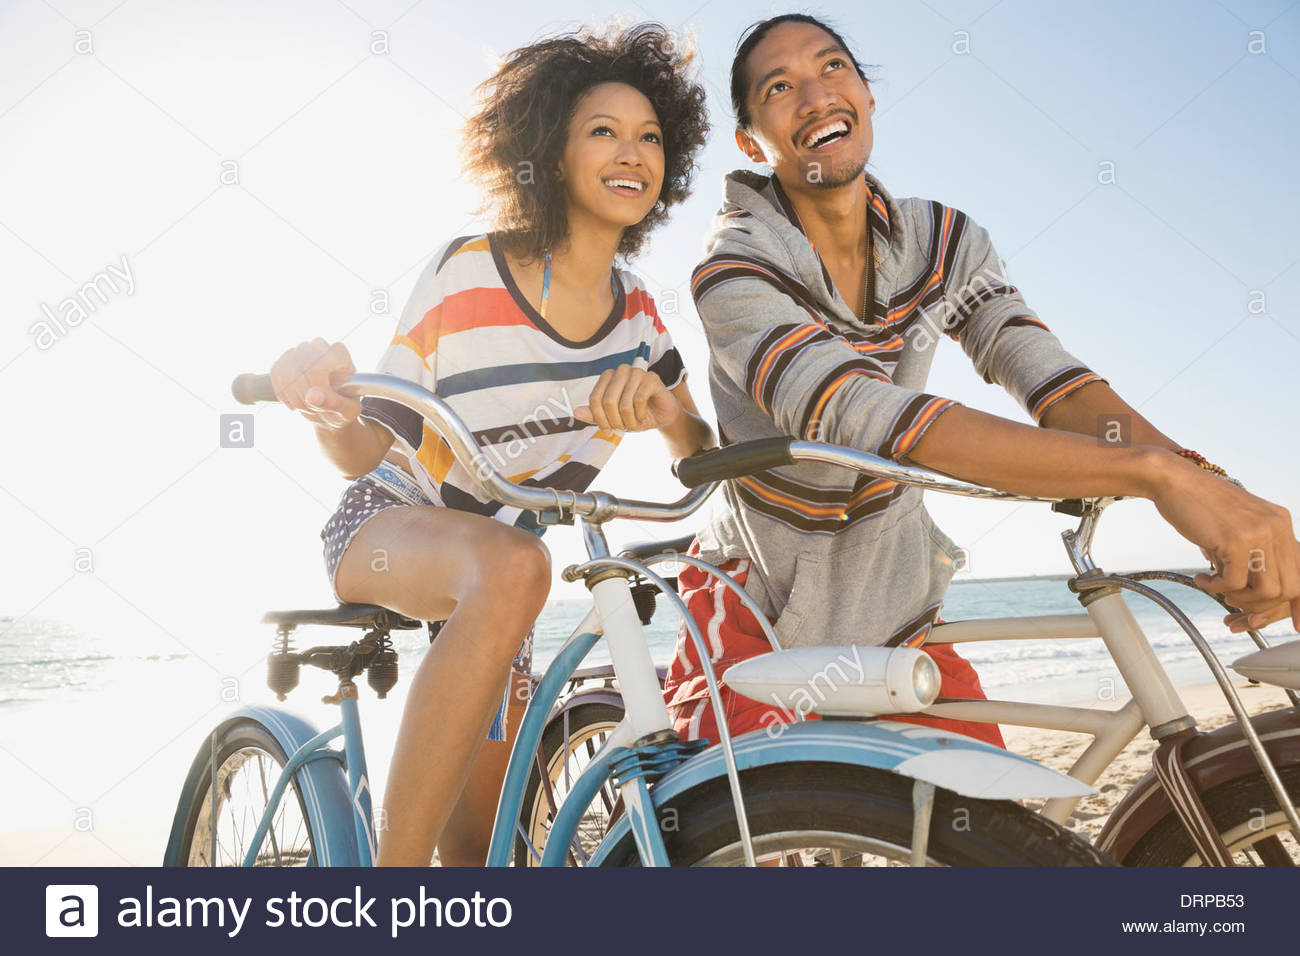 Couple with bicycles on beach - Stock Image